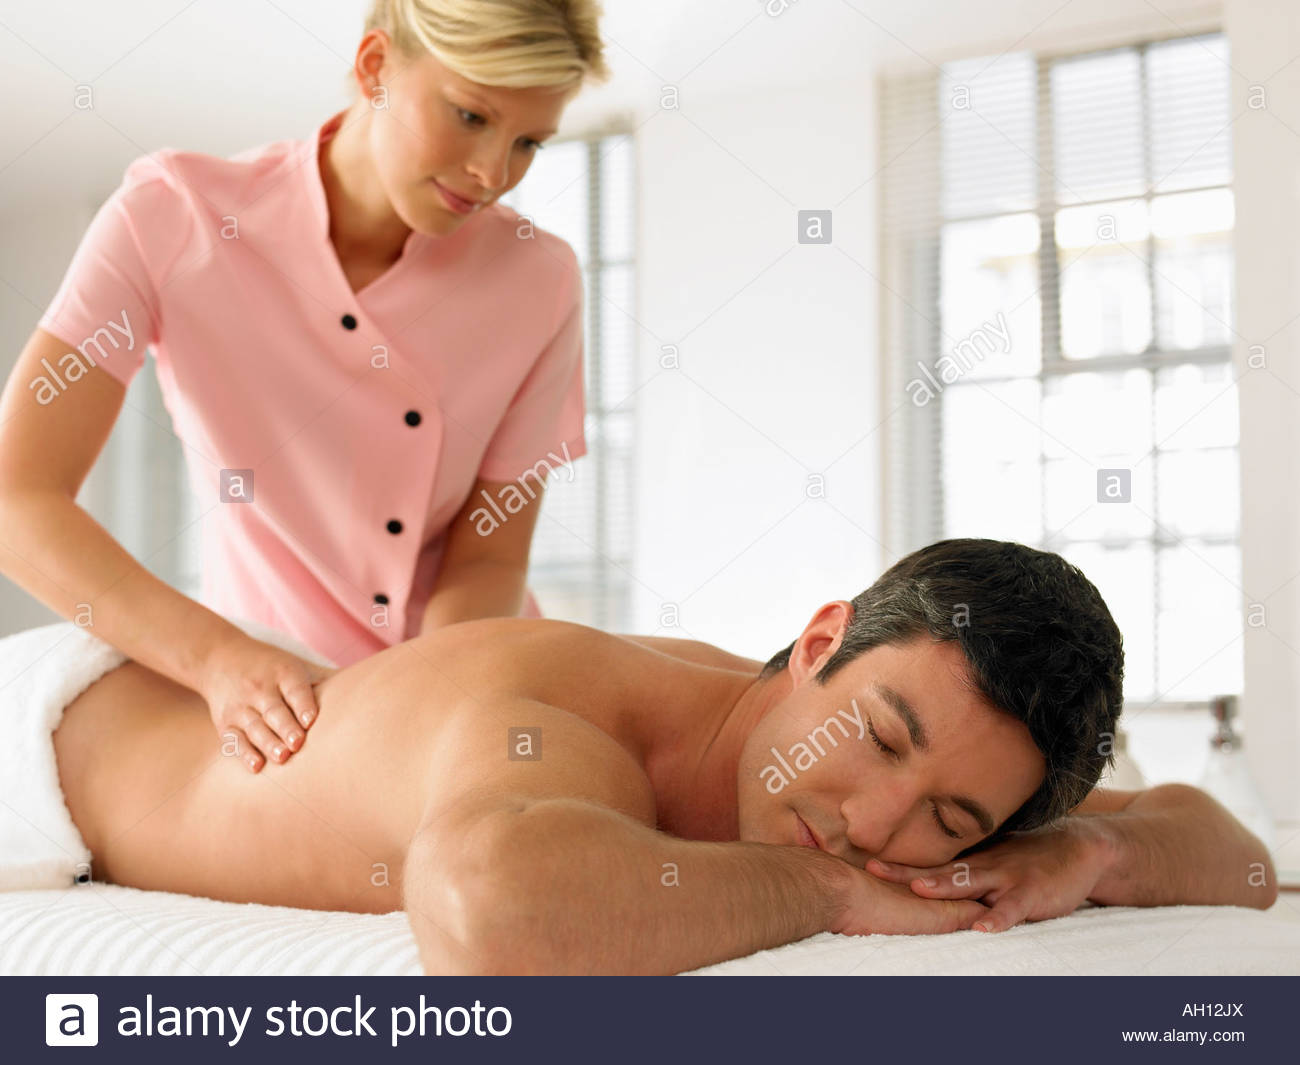 A man getting a massage Stock Photo